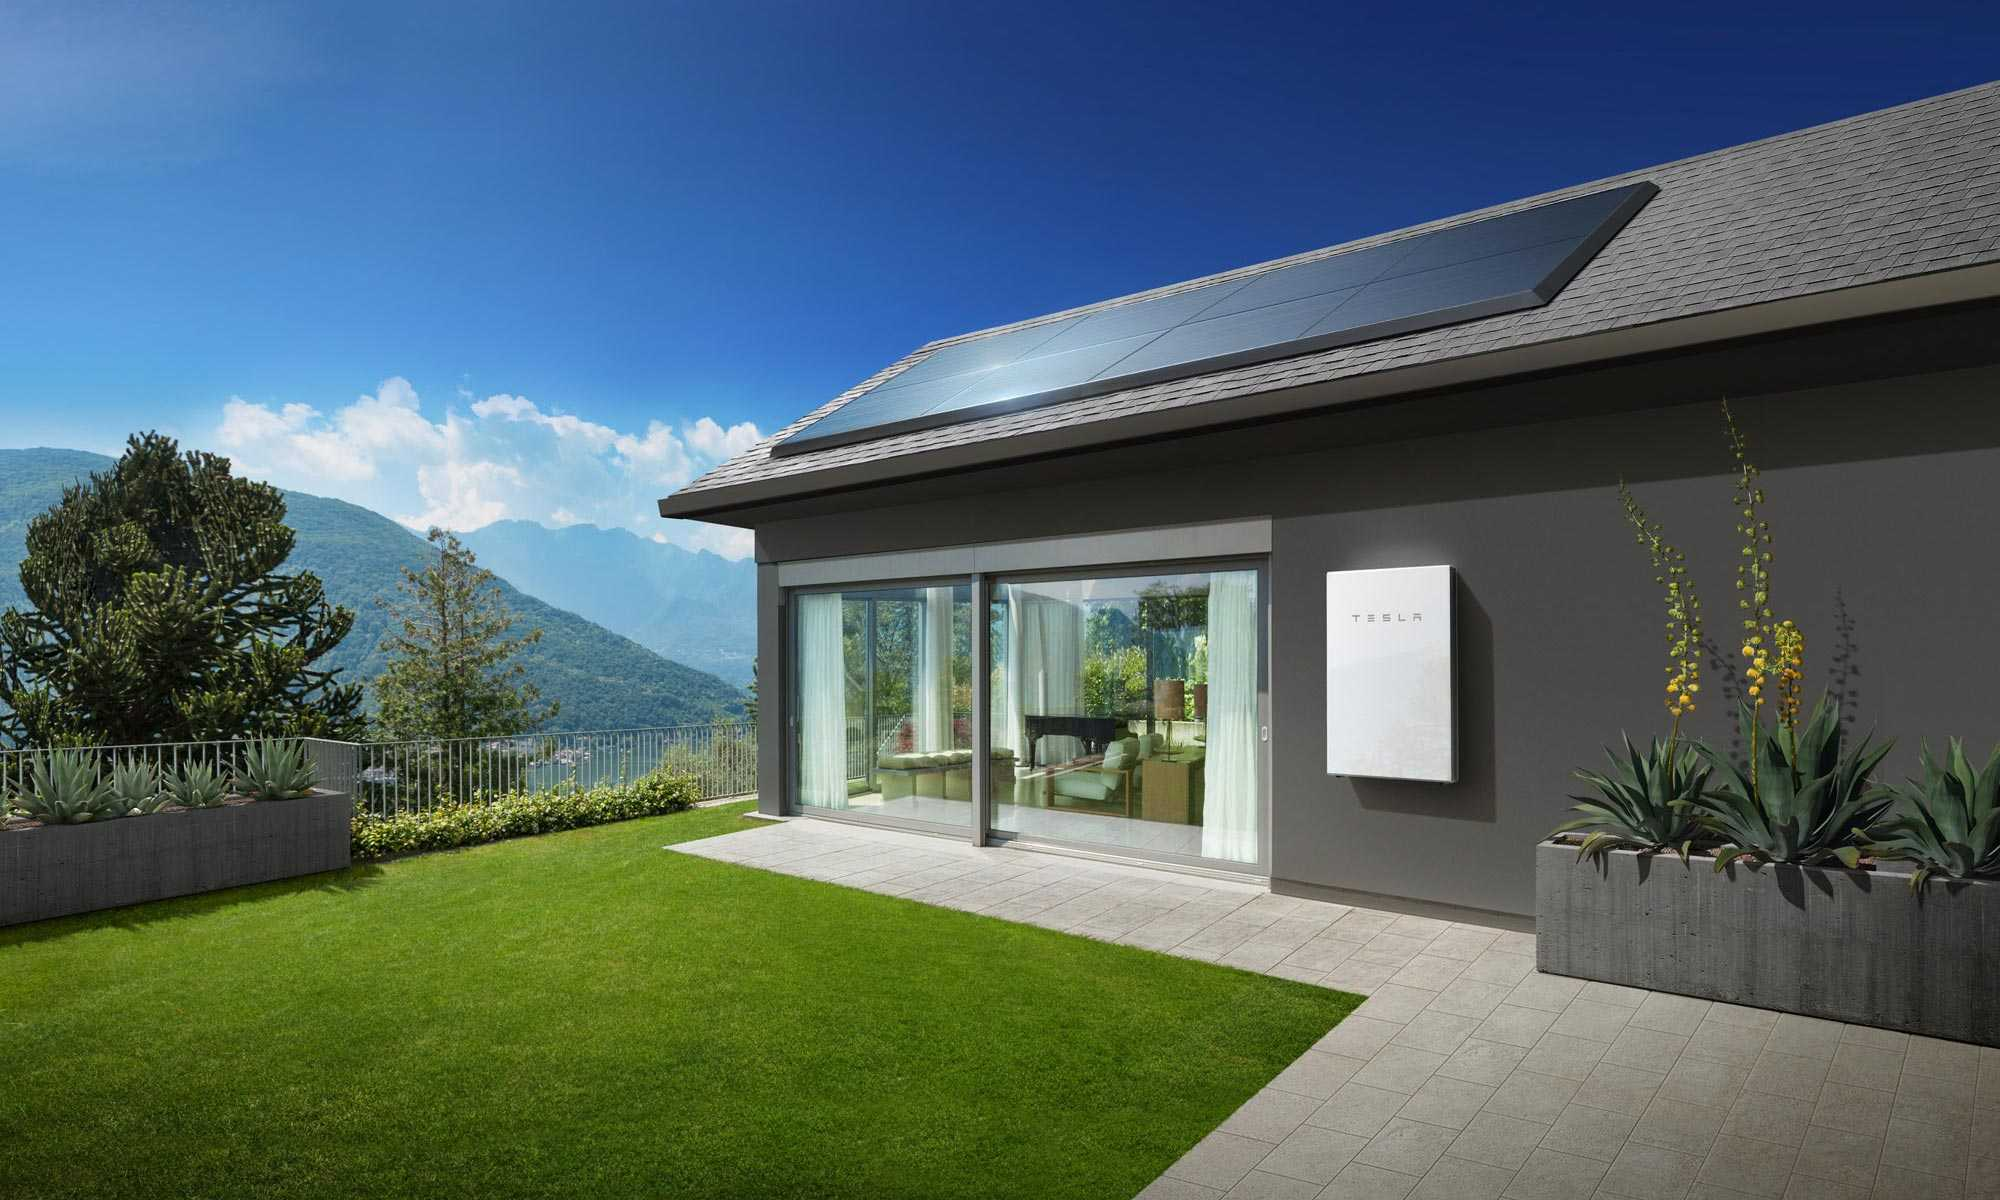 house-with-battery-and-panels_new.jpg